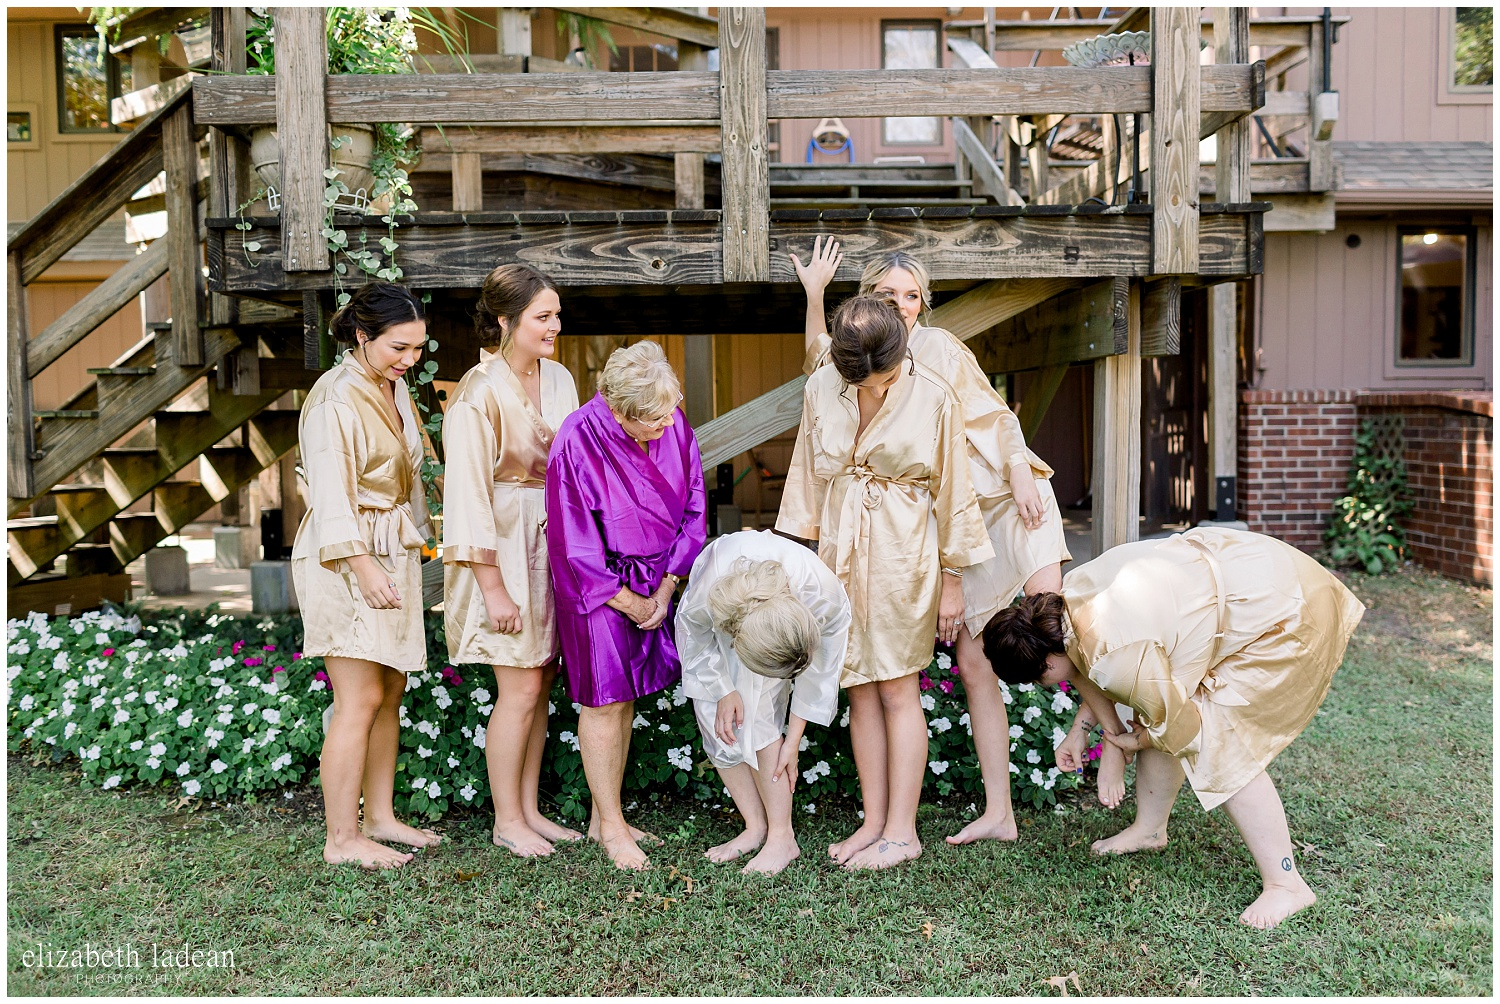 -behind-the-scenes-of-a-wedding-photographer-2018-elizabeth-ladean-photography-photo_3561.jpg